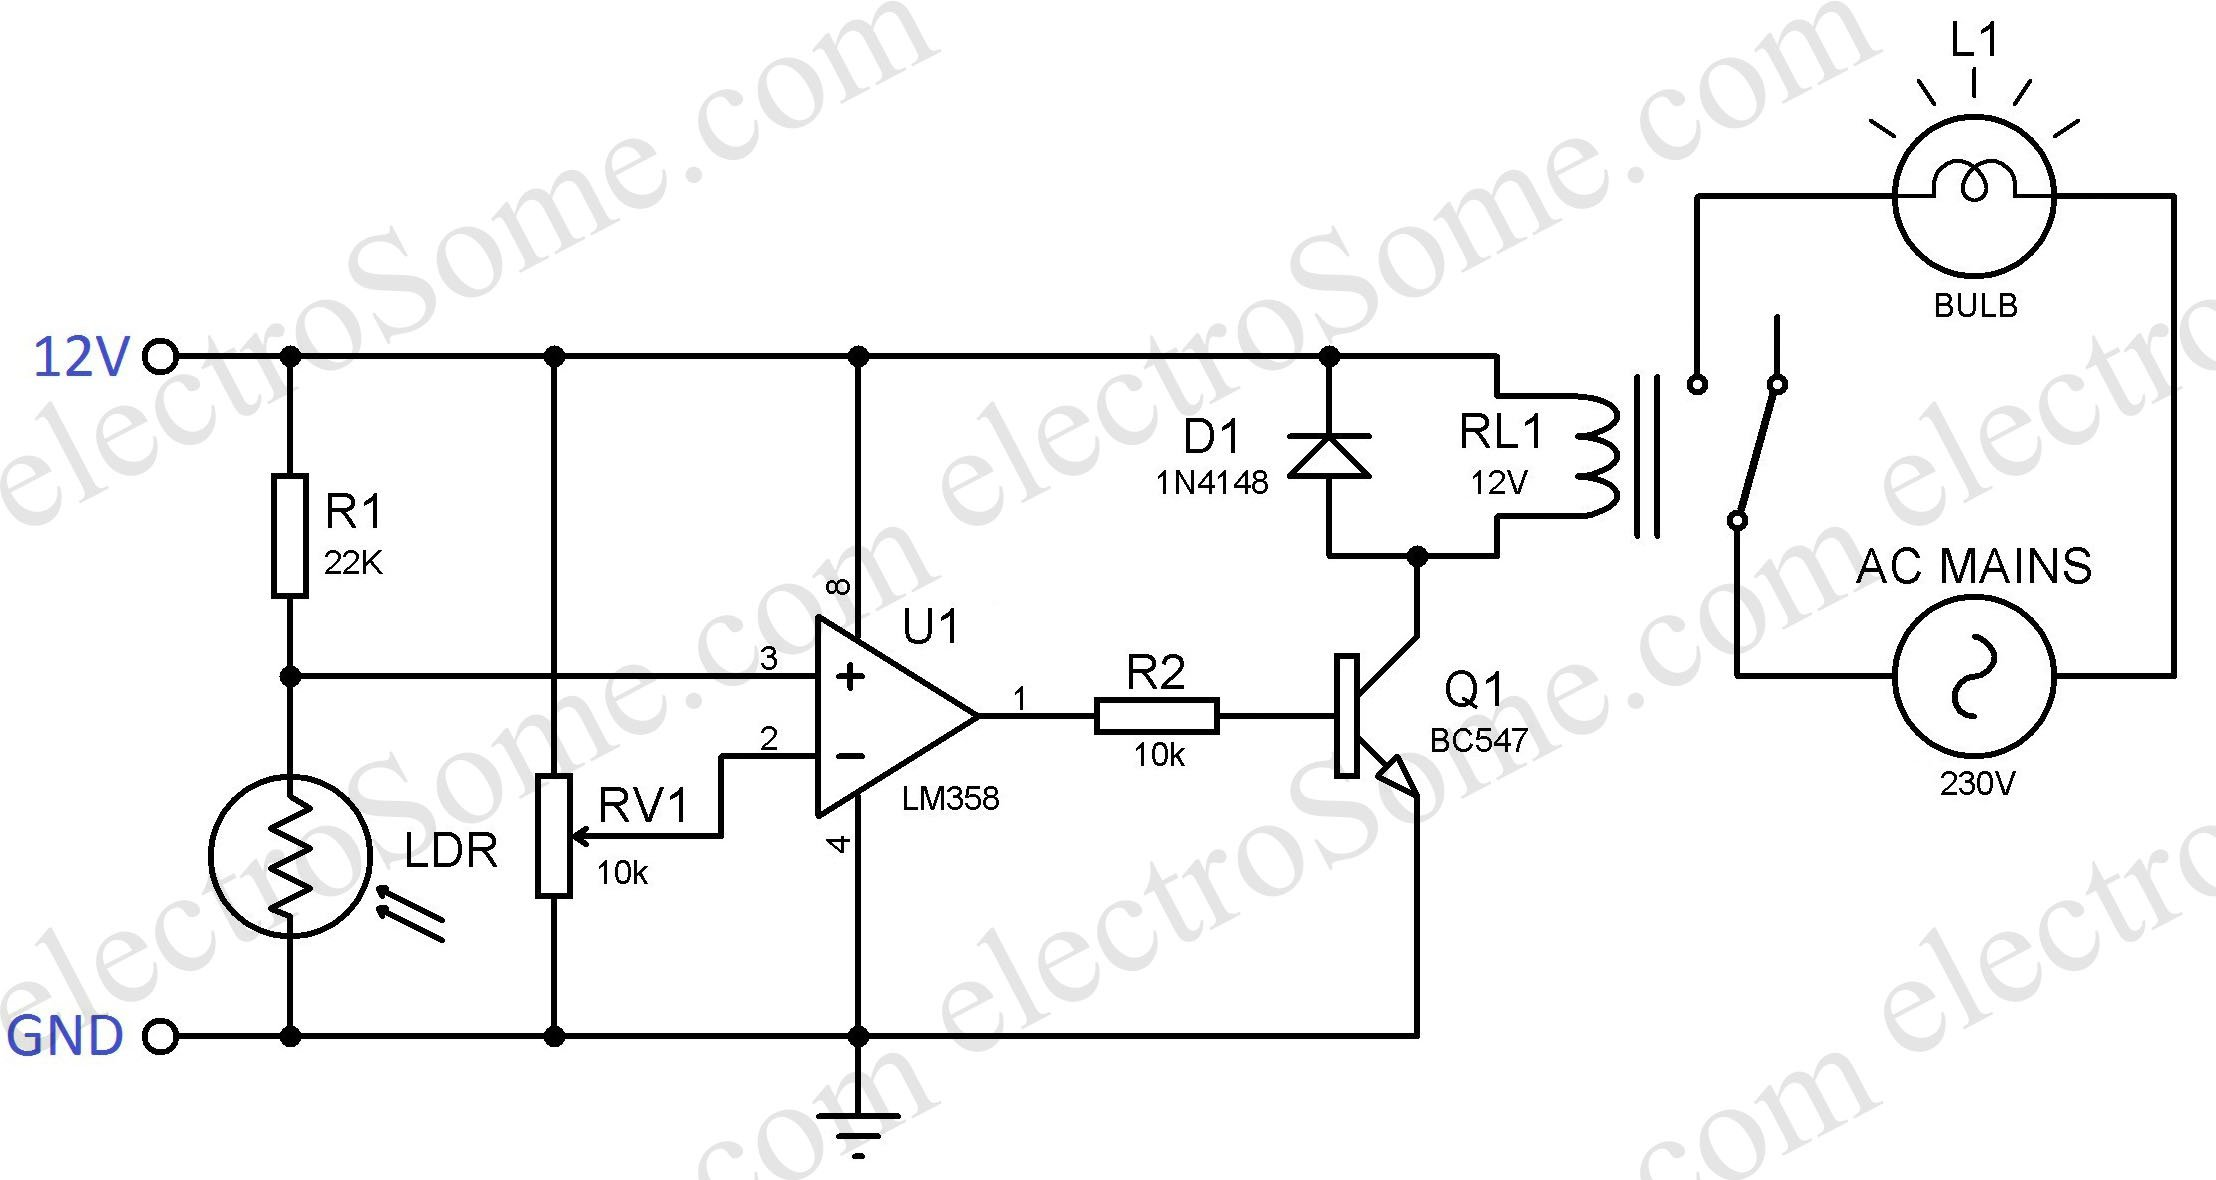 Light Source Circuit Diagram Quick Start Guide Of Wiring Led Bulb Automatic Night Lamp Using Ldr Rh Electrosome Com 12v